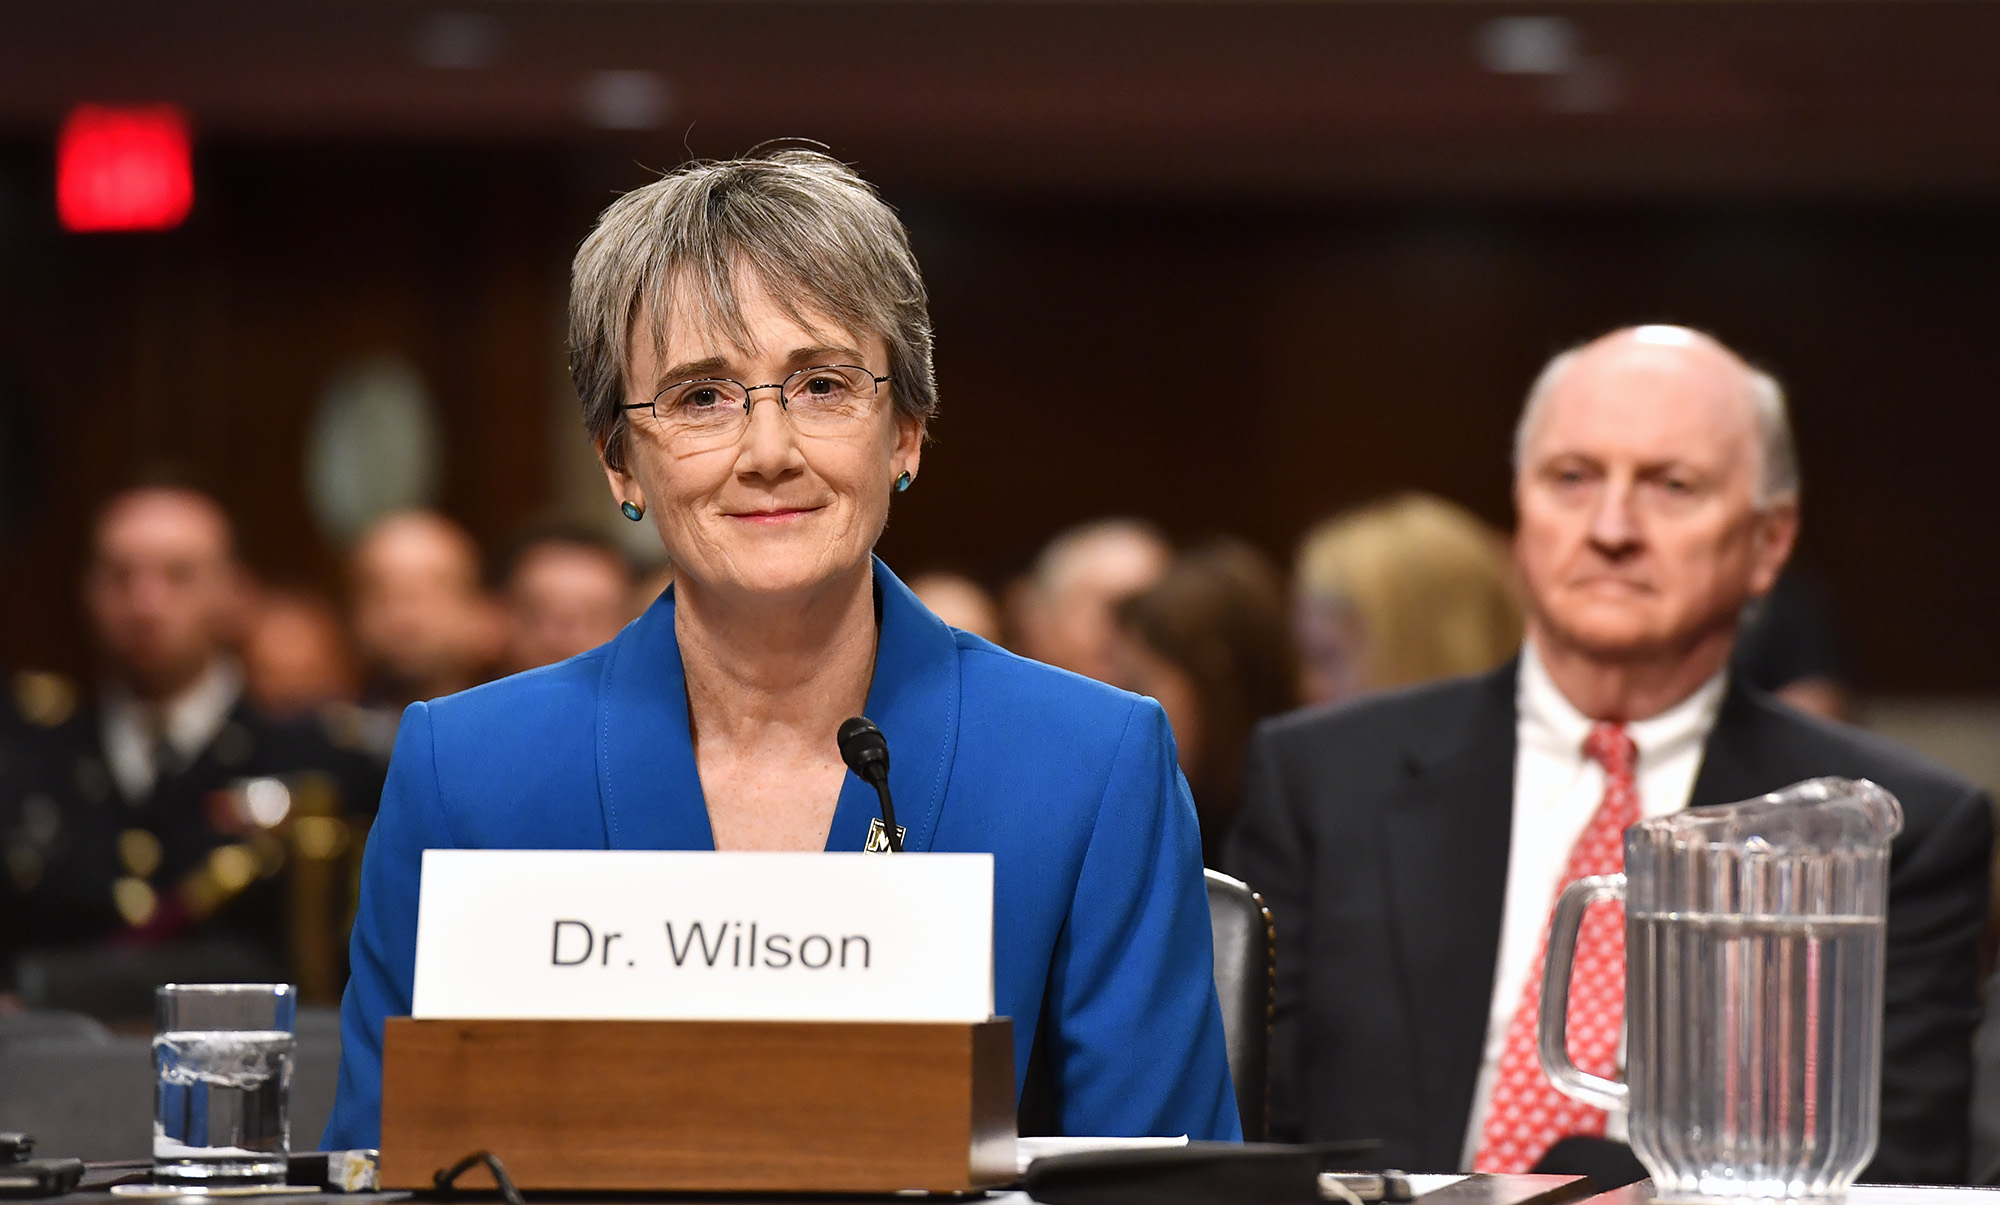 Heather Wilson Air Force Secy - Senate Confirms Trump's Pick For Air Force Secretary